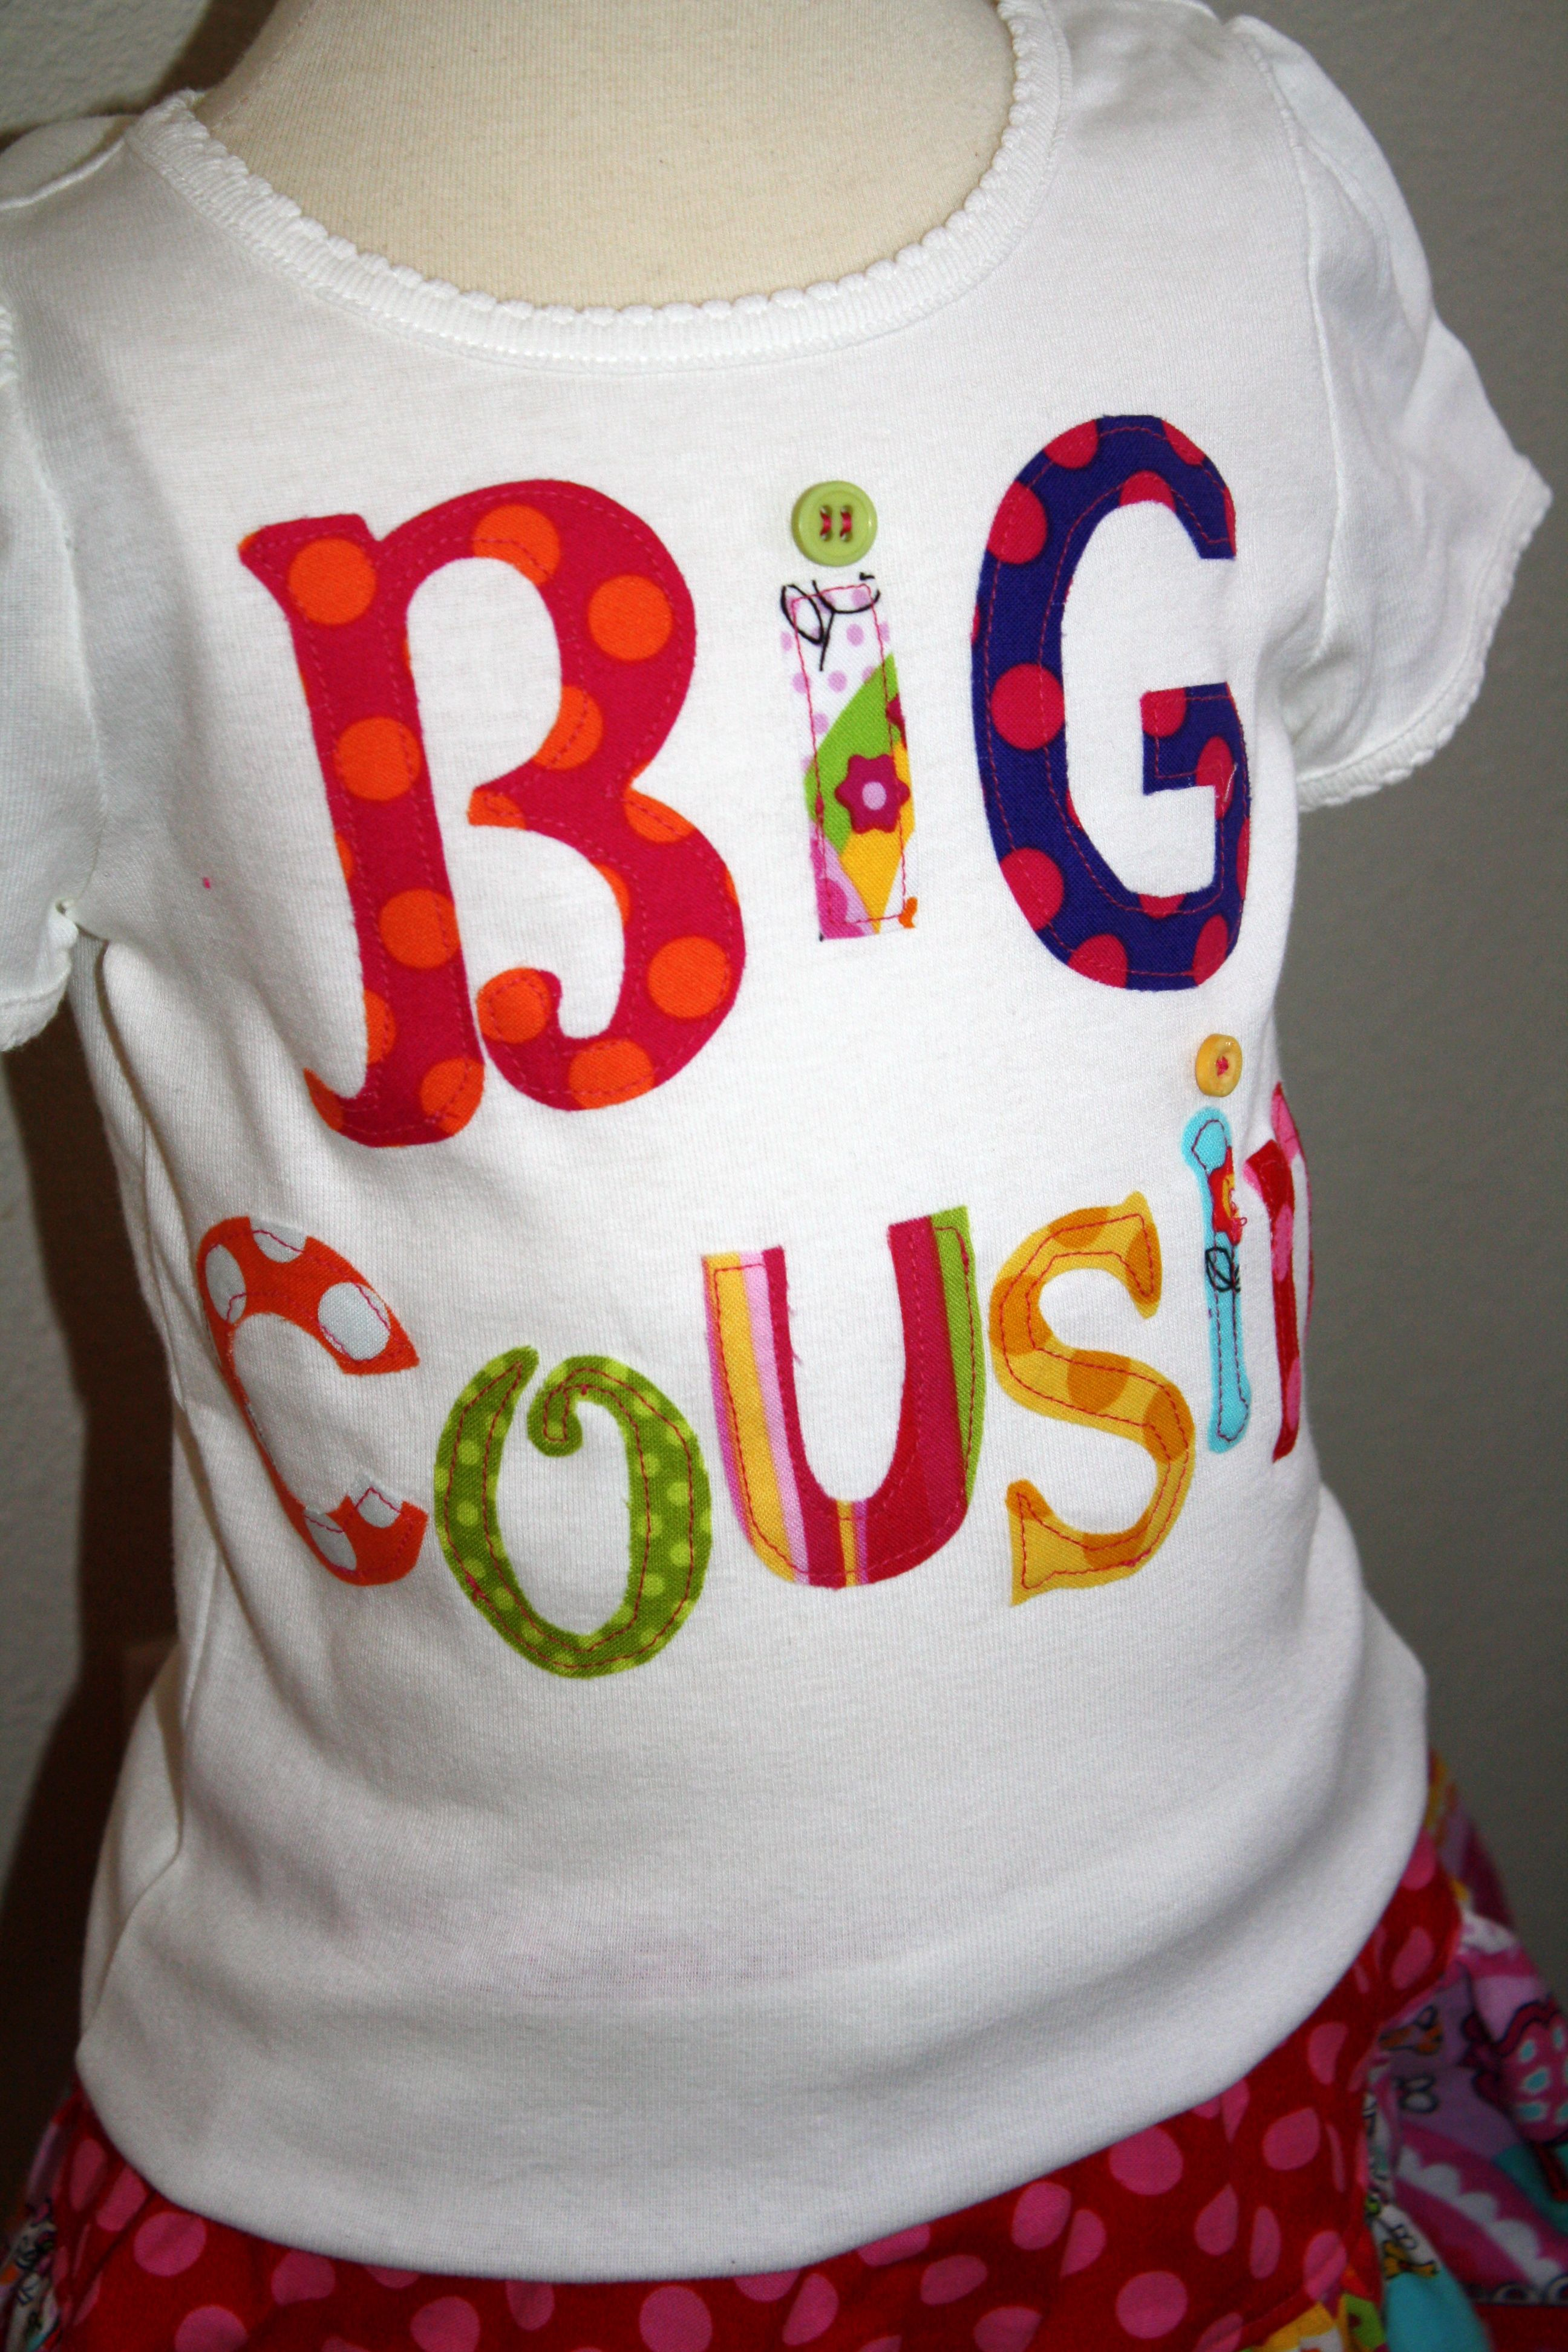 Big_20cousin_20shirt_203_original